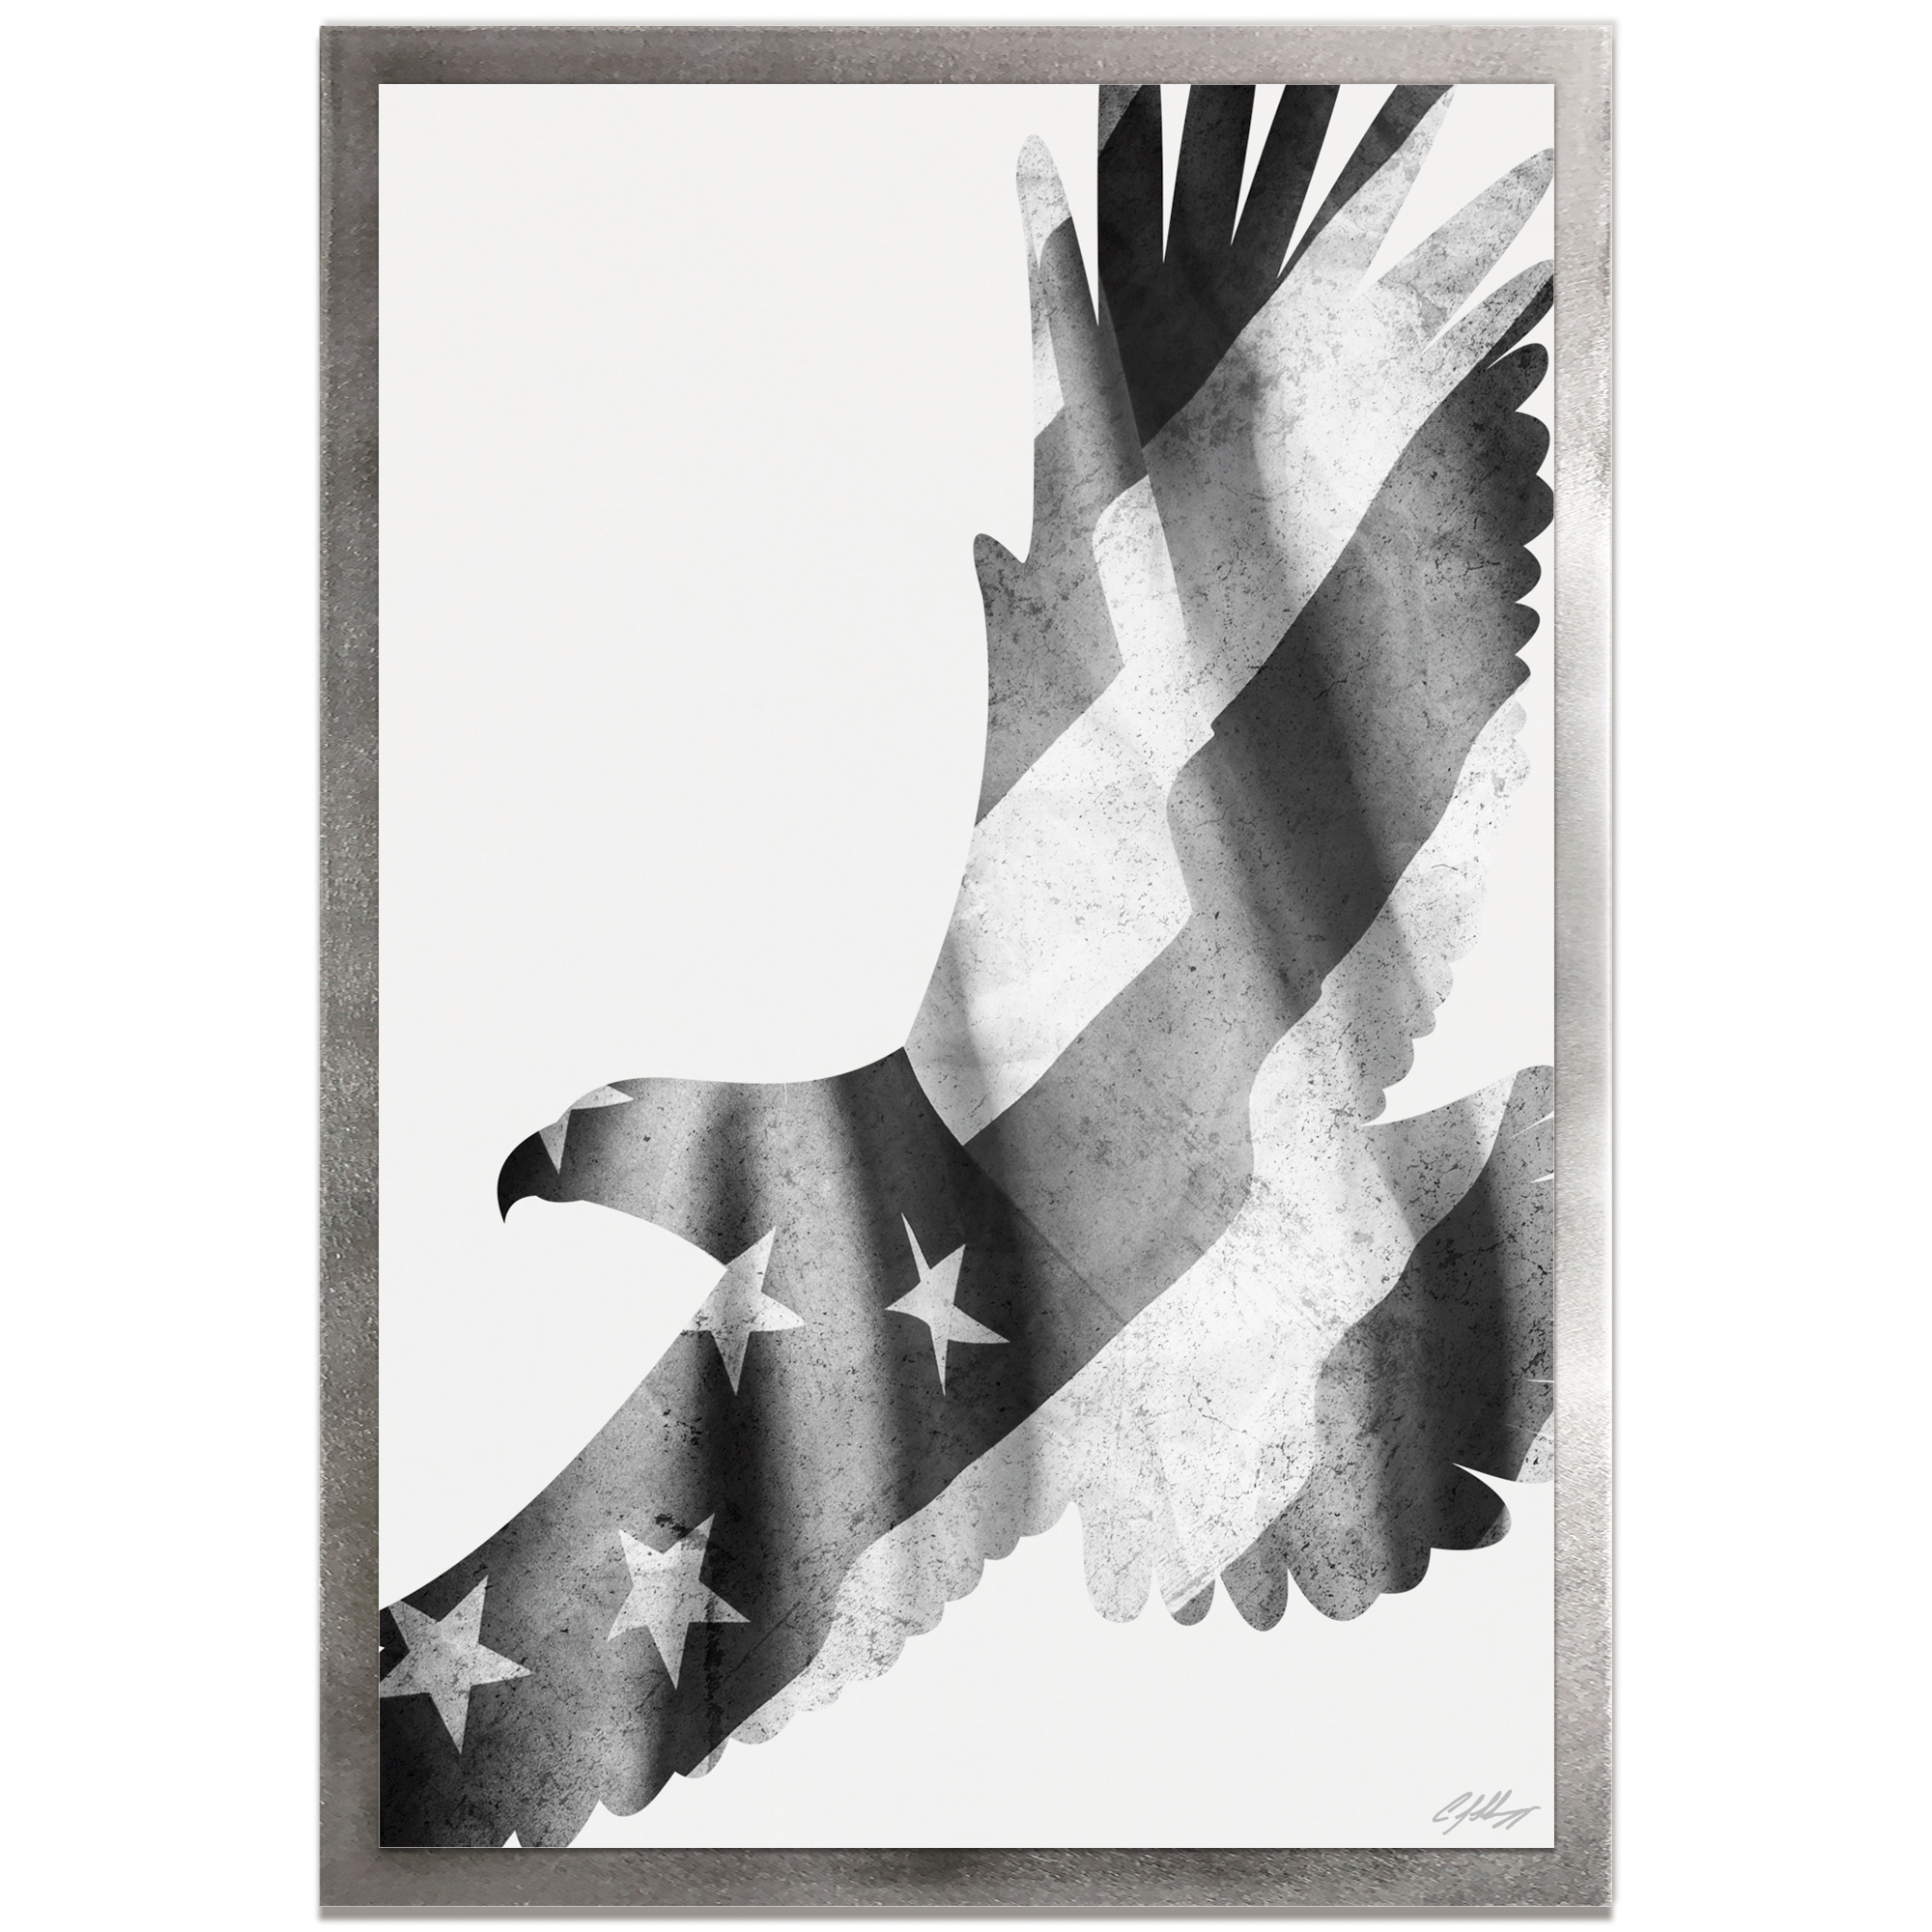 Adam Schwoeppe 'Freedom Eagle Black & White Framed' 22in x 32in Patriotic US Flag Art on Colored Metal